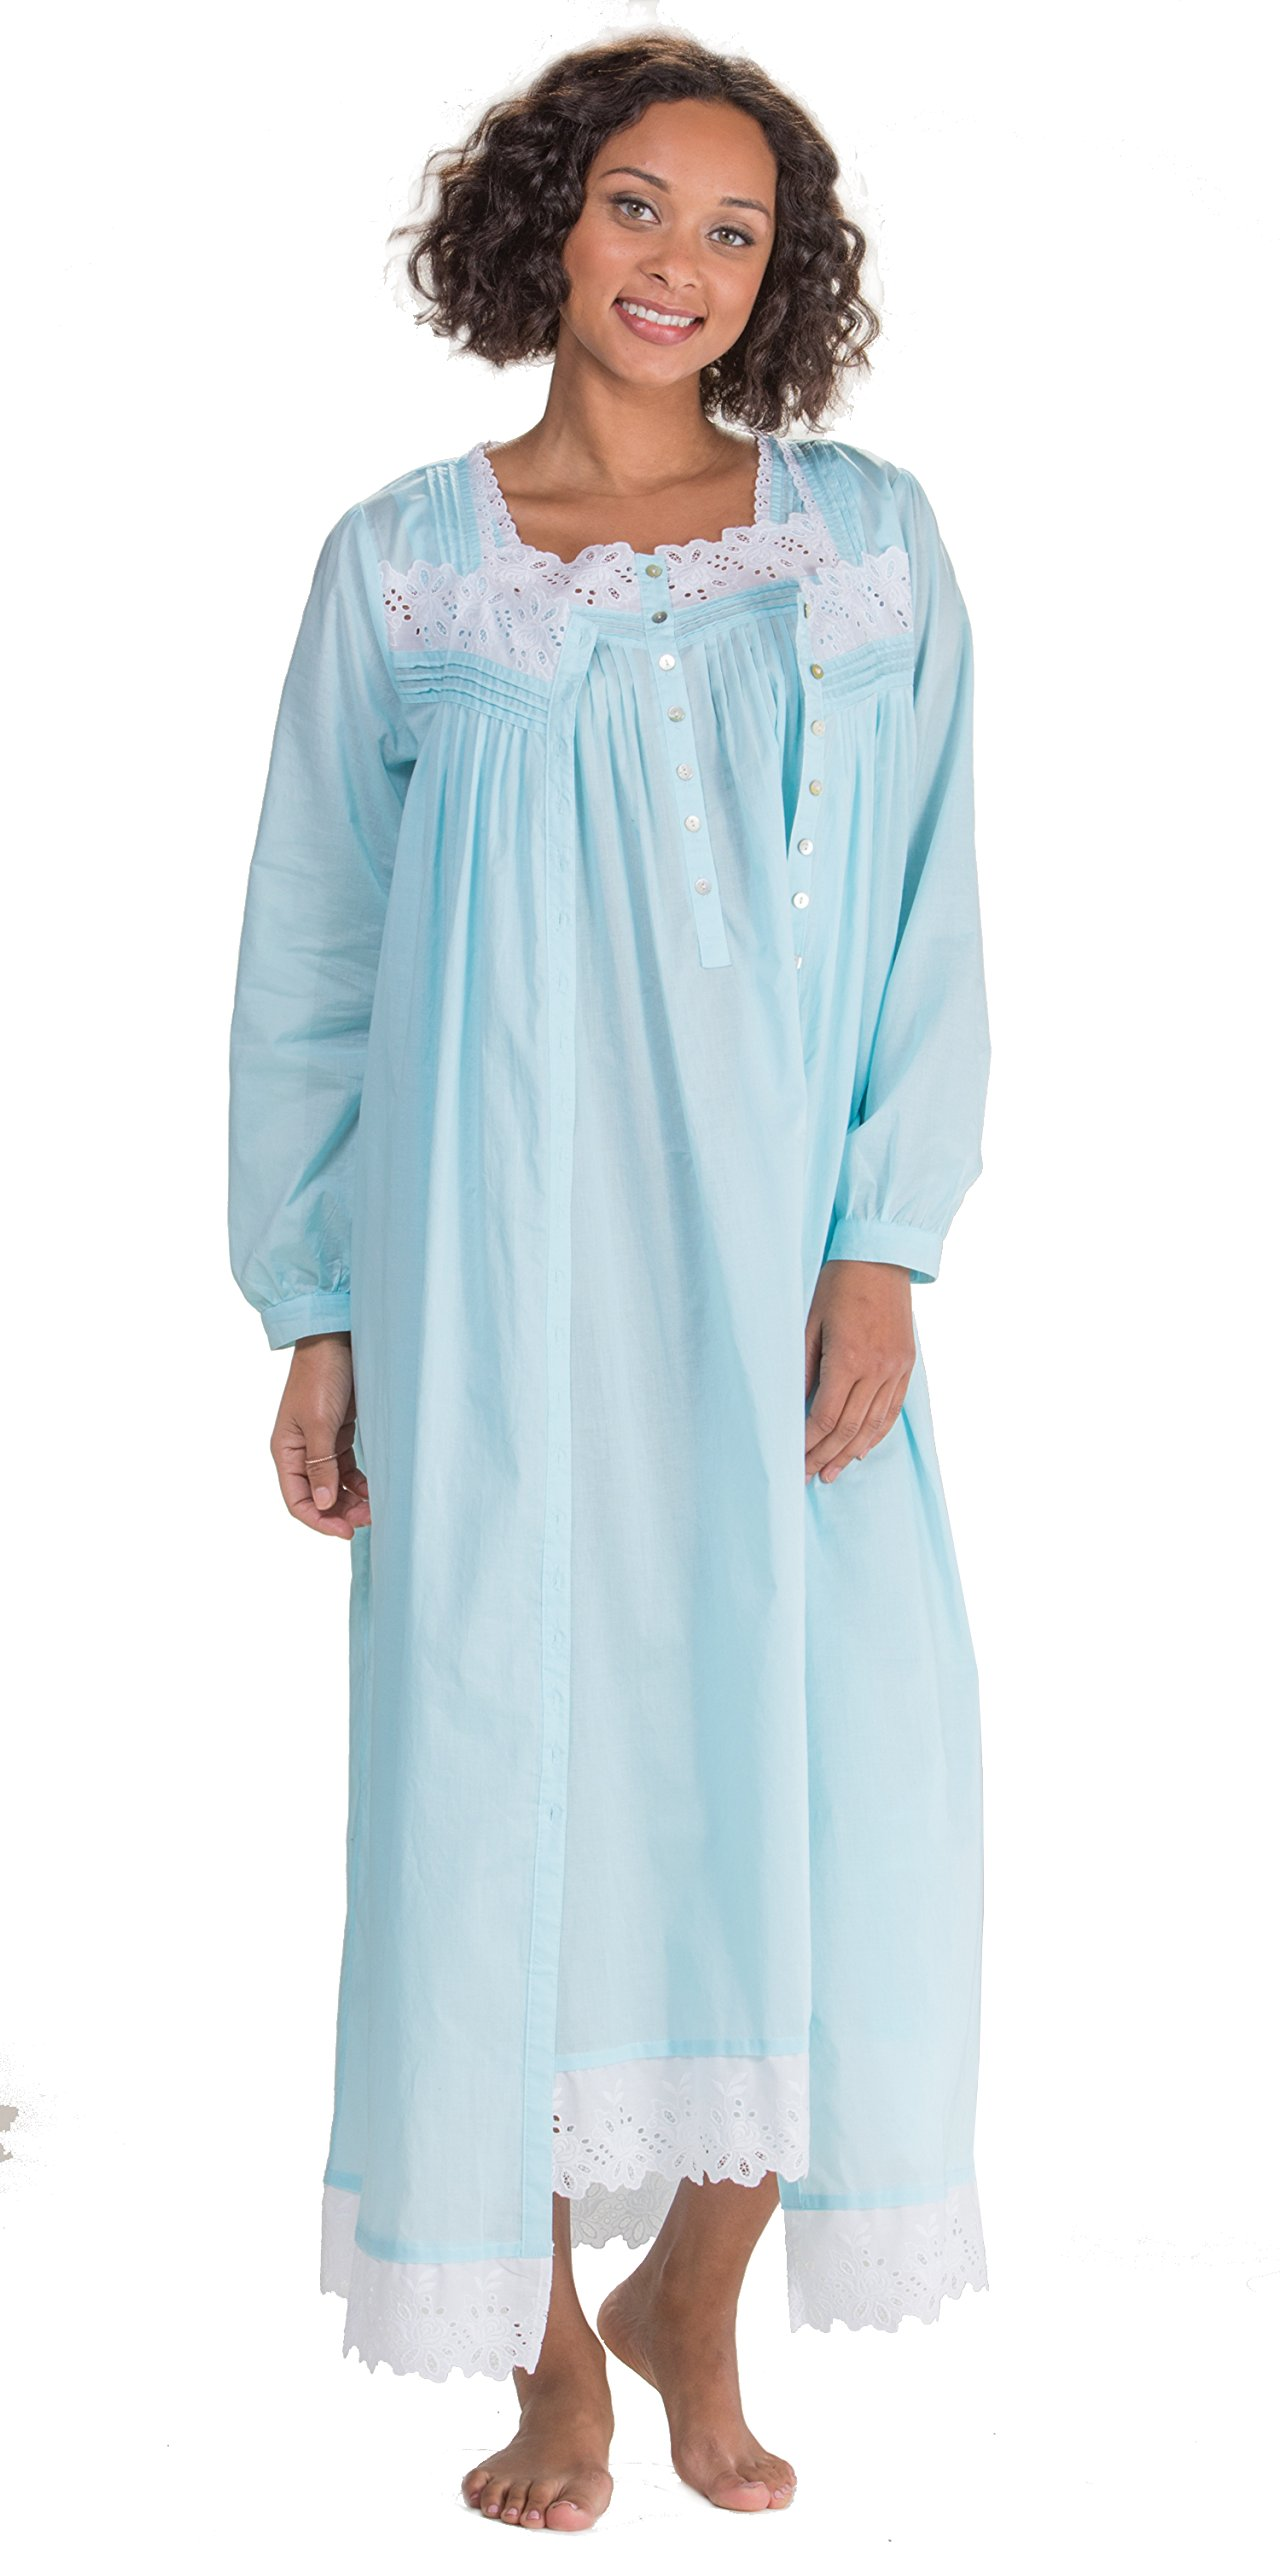 Eileen West Cotton Lawn Sleeveless Gown & Robe Peignoir Set - Ethereal Sea (Solid Turquoise, Medium)